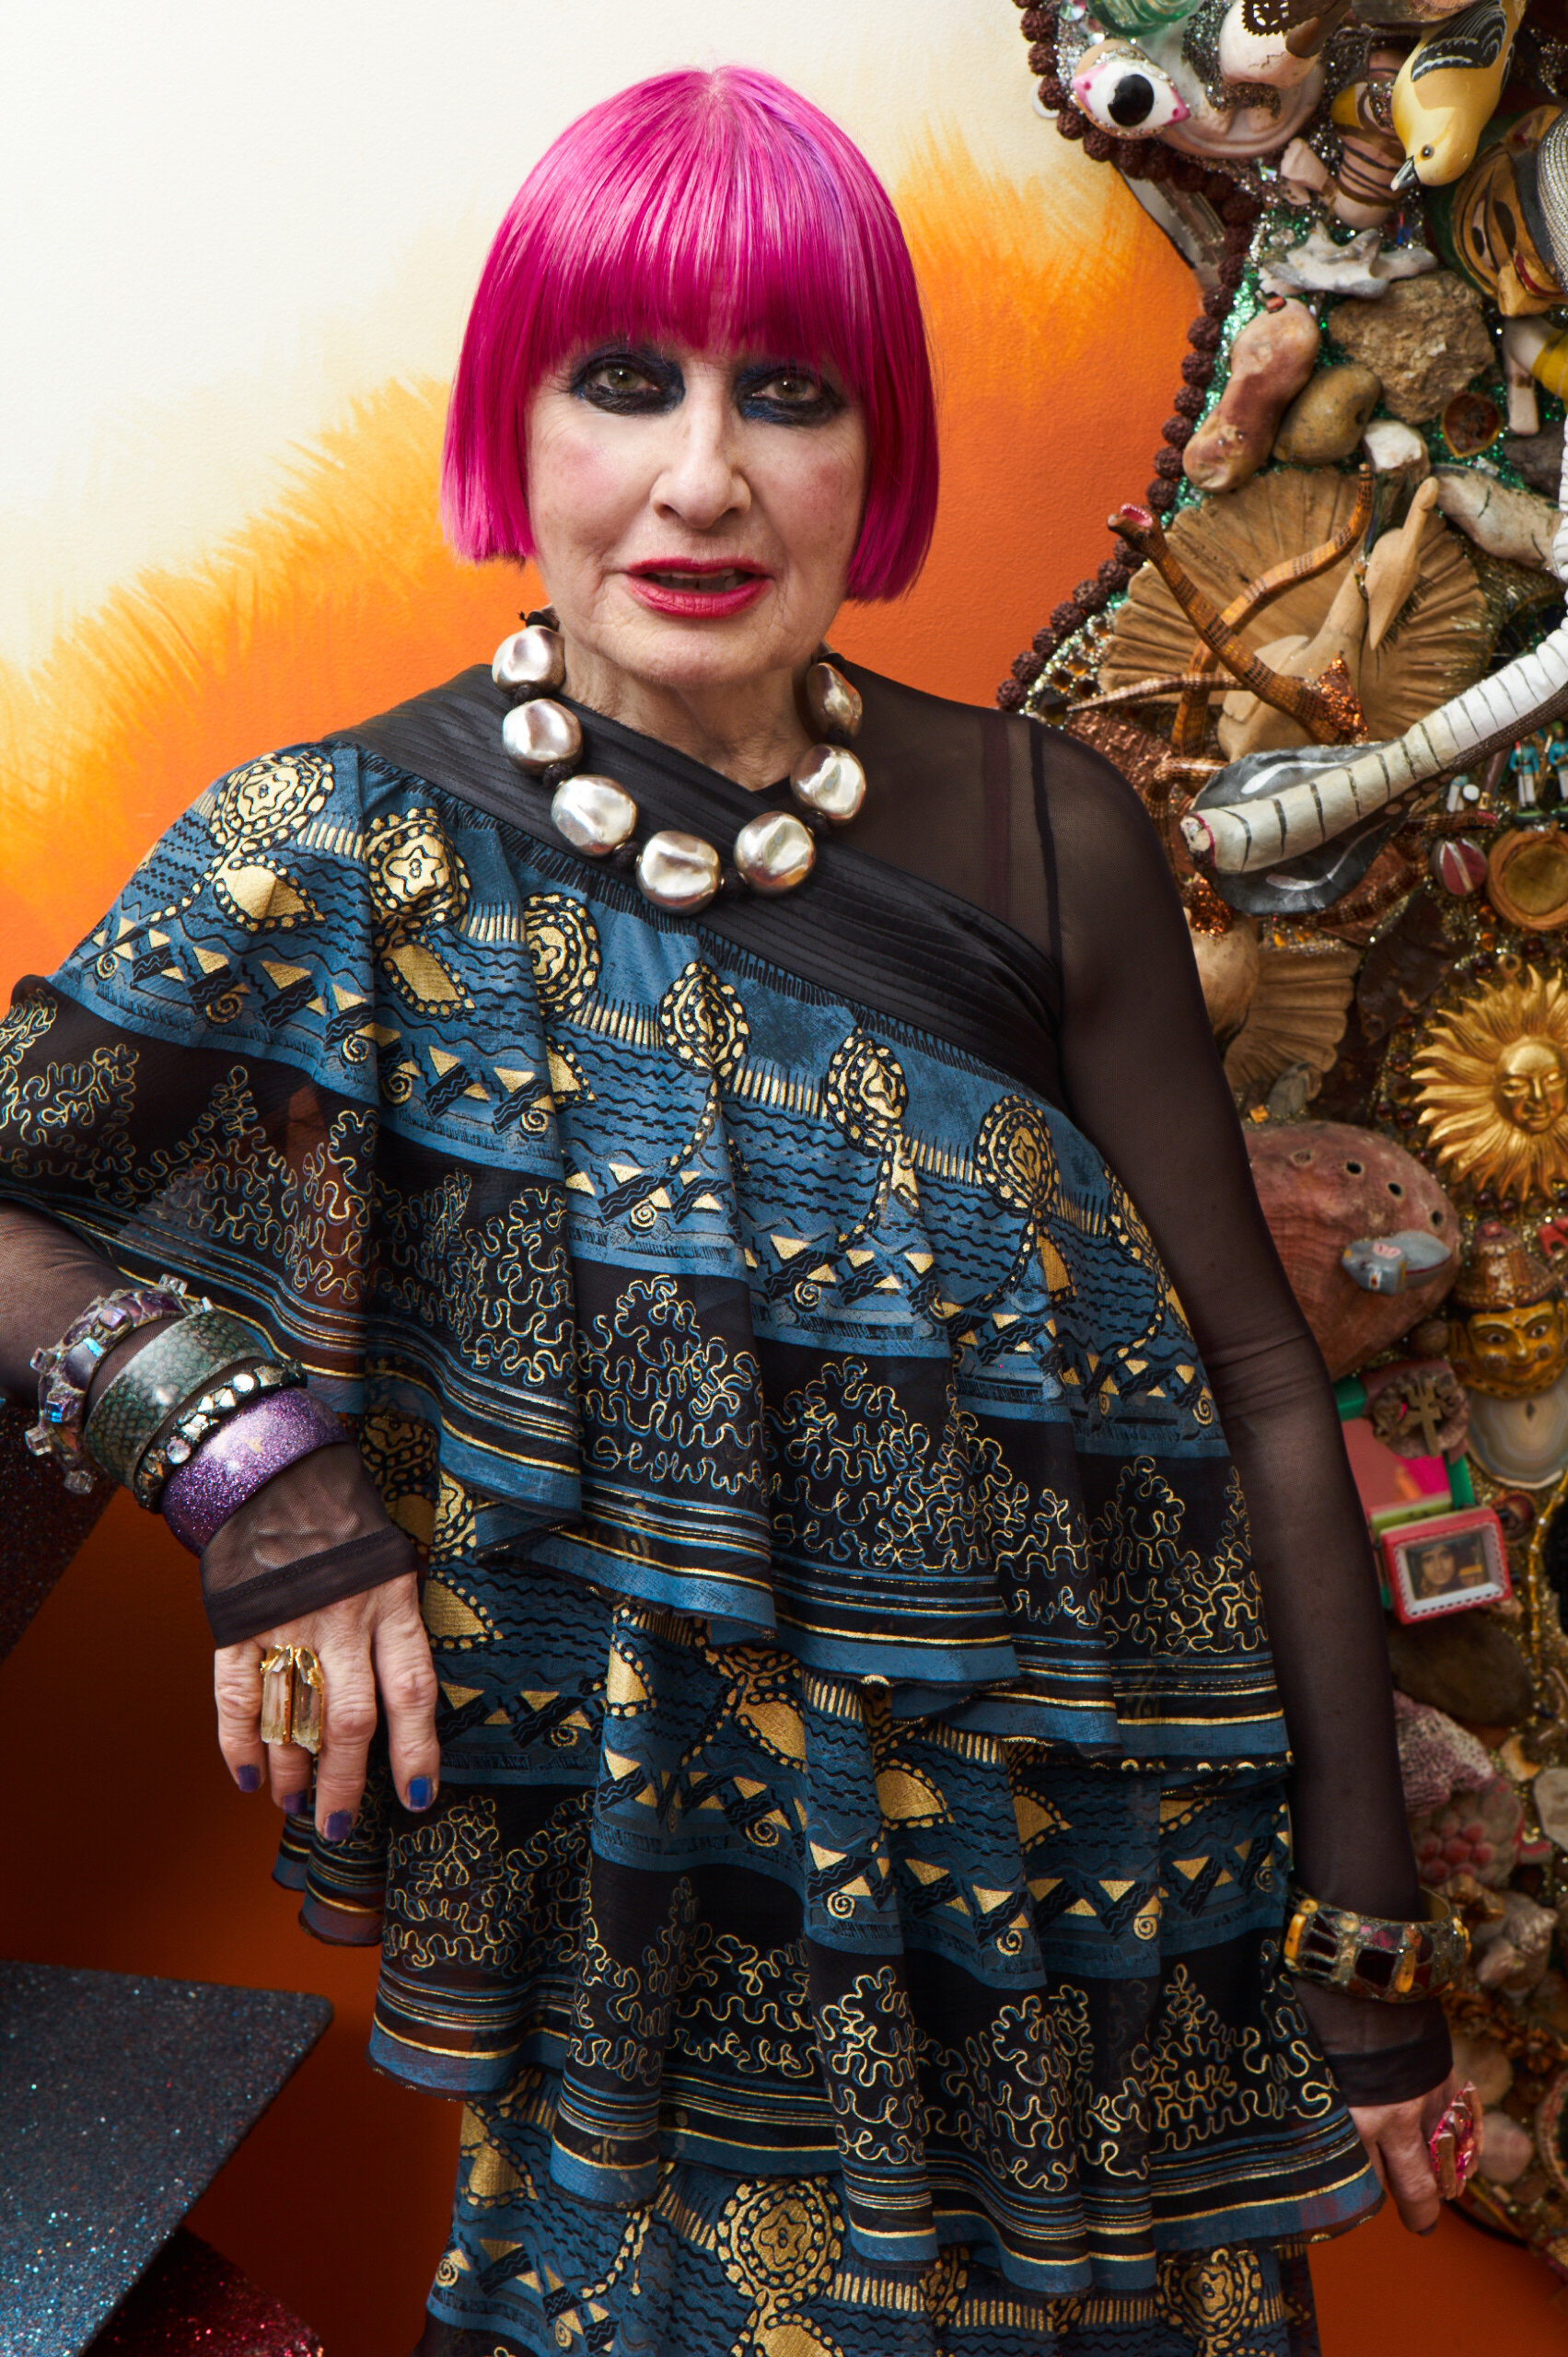 """Zandra Rhodes wearing a piece of her A/W16 """"Songket Brocade"""" collection with the """"Knitted Circle"""" design style 16/157, photographed in her home by Ram Shergill"""